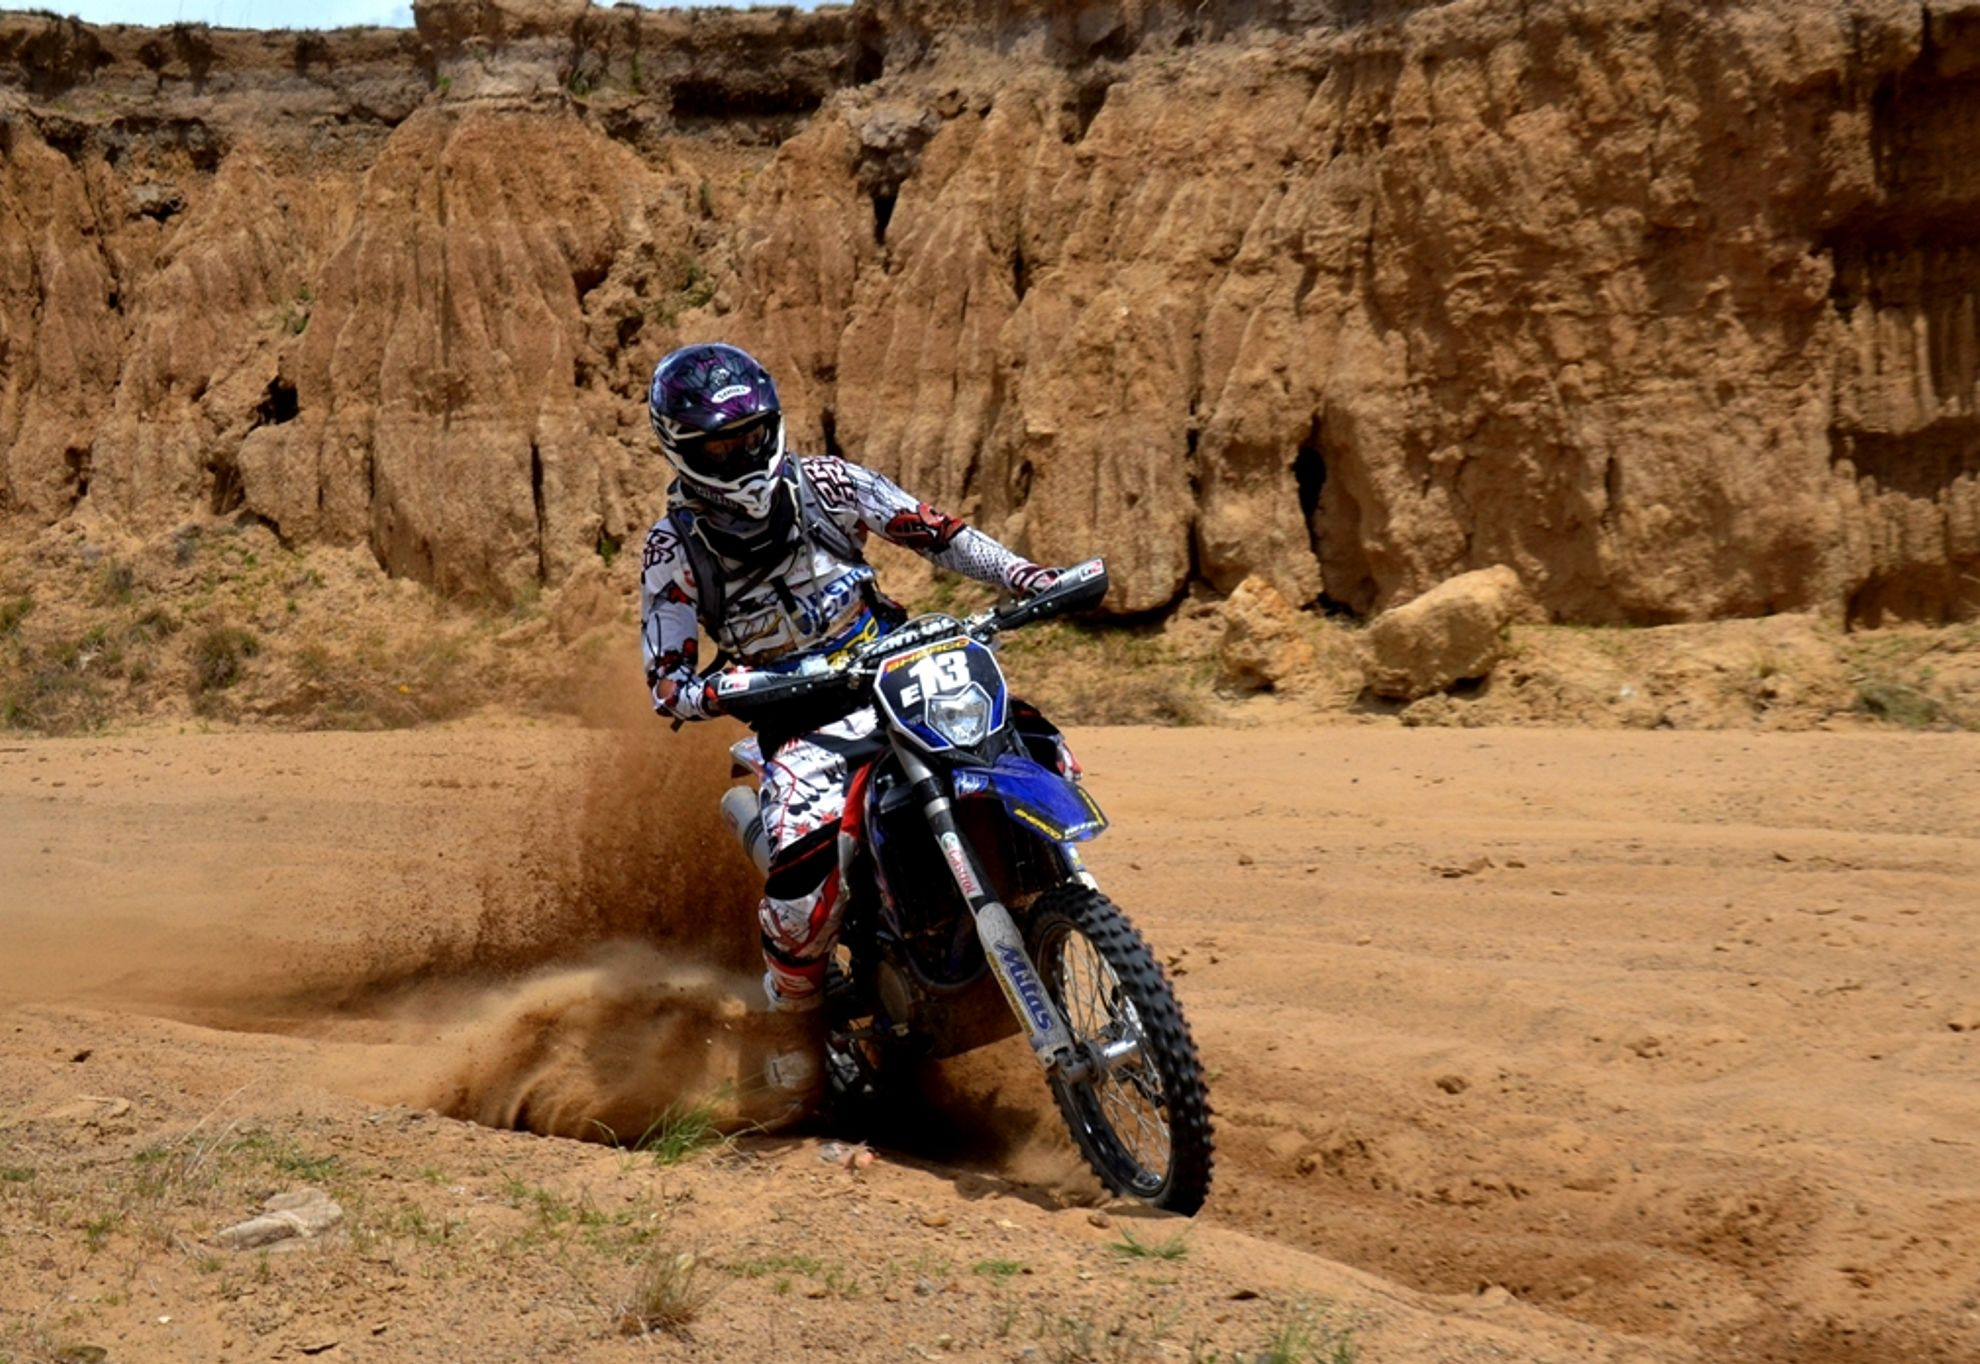 2014_Liquorland_National_Enduro_Motorcycle_Championship